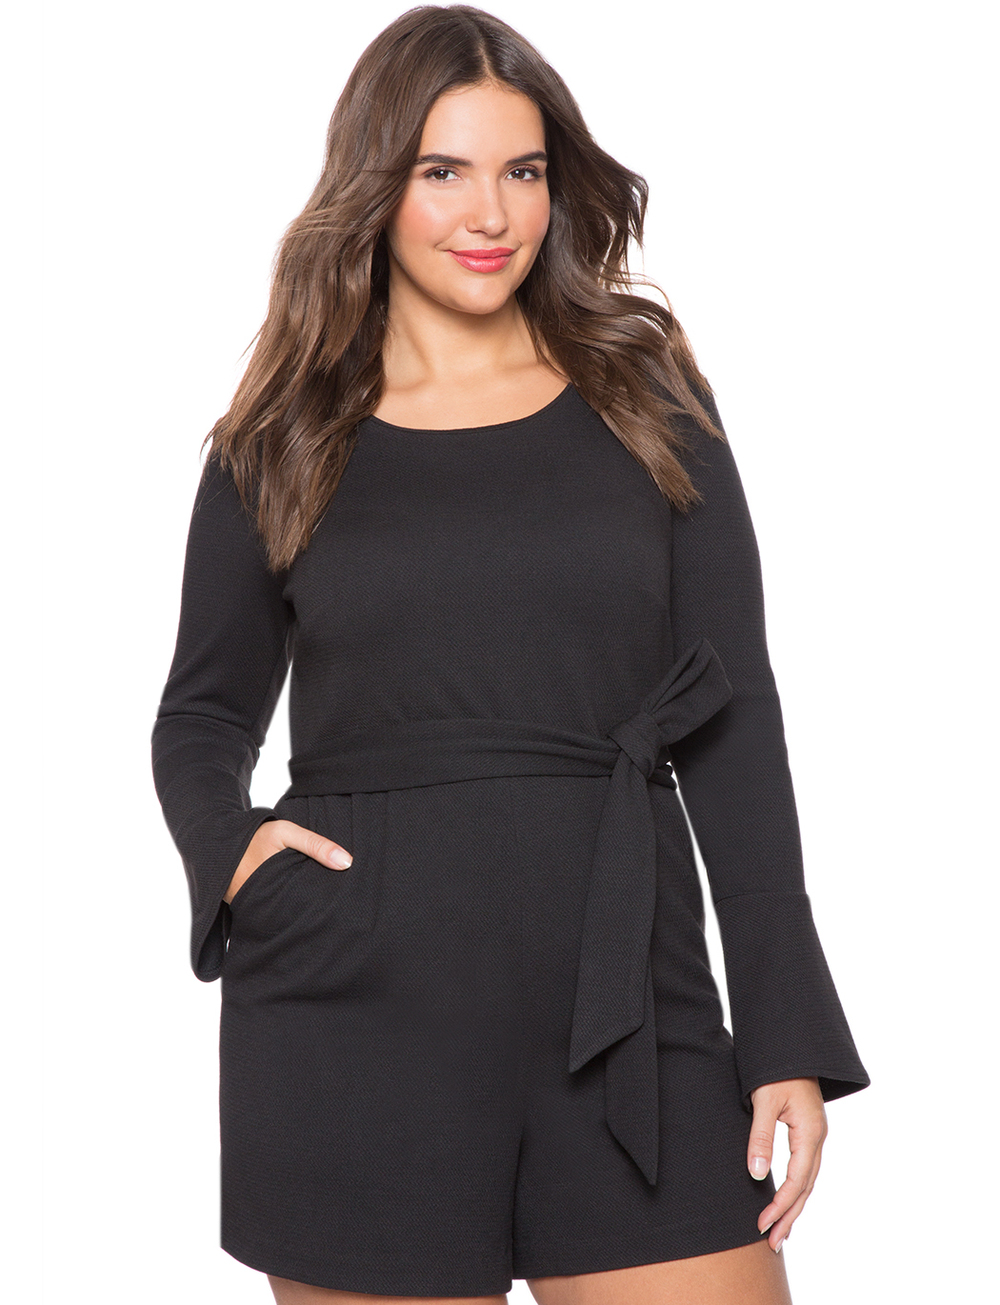 Textured Knit Romper. Eloquii. $99. Additional 60% off with code: ENJOY.